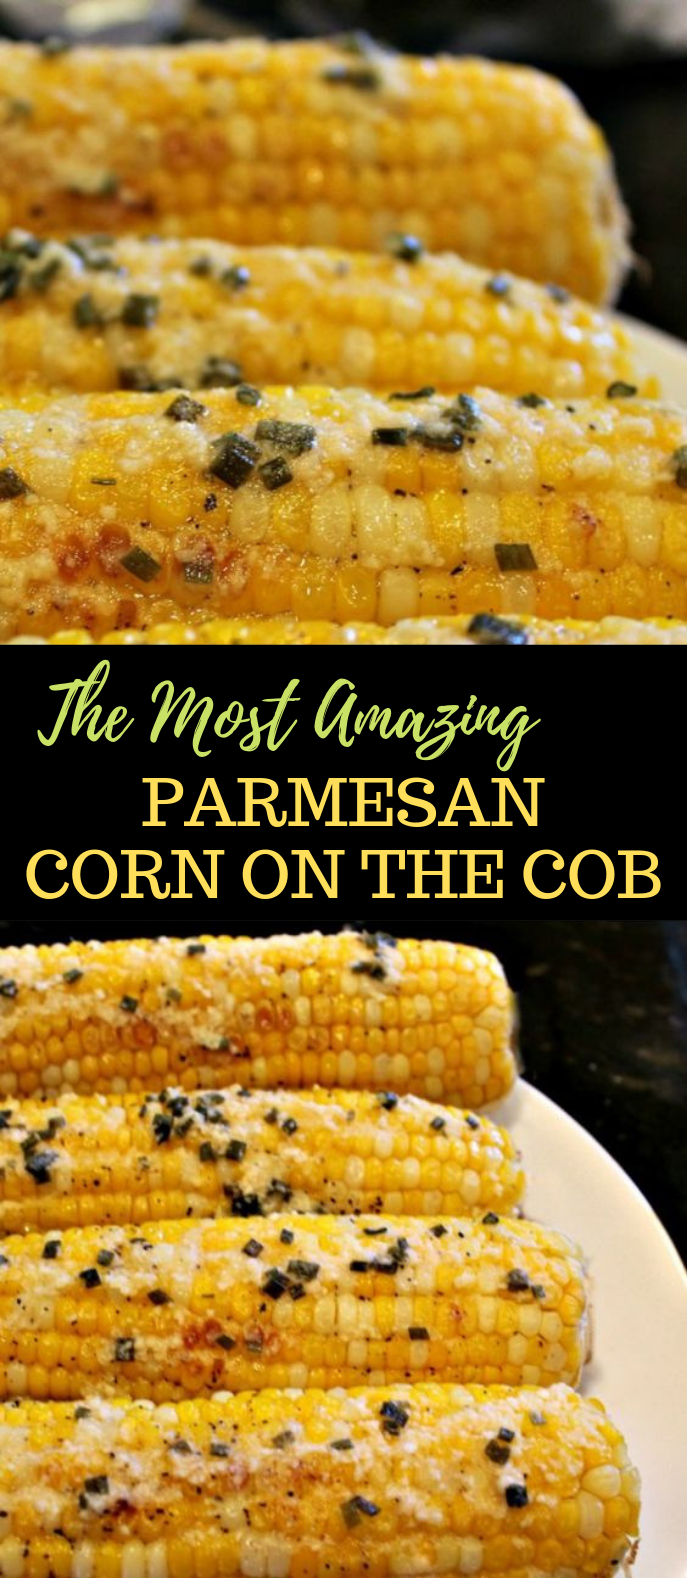 The Most Amazing Parmesan Chive Corn on the Cob #BBQ #Party